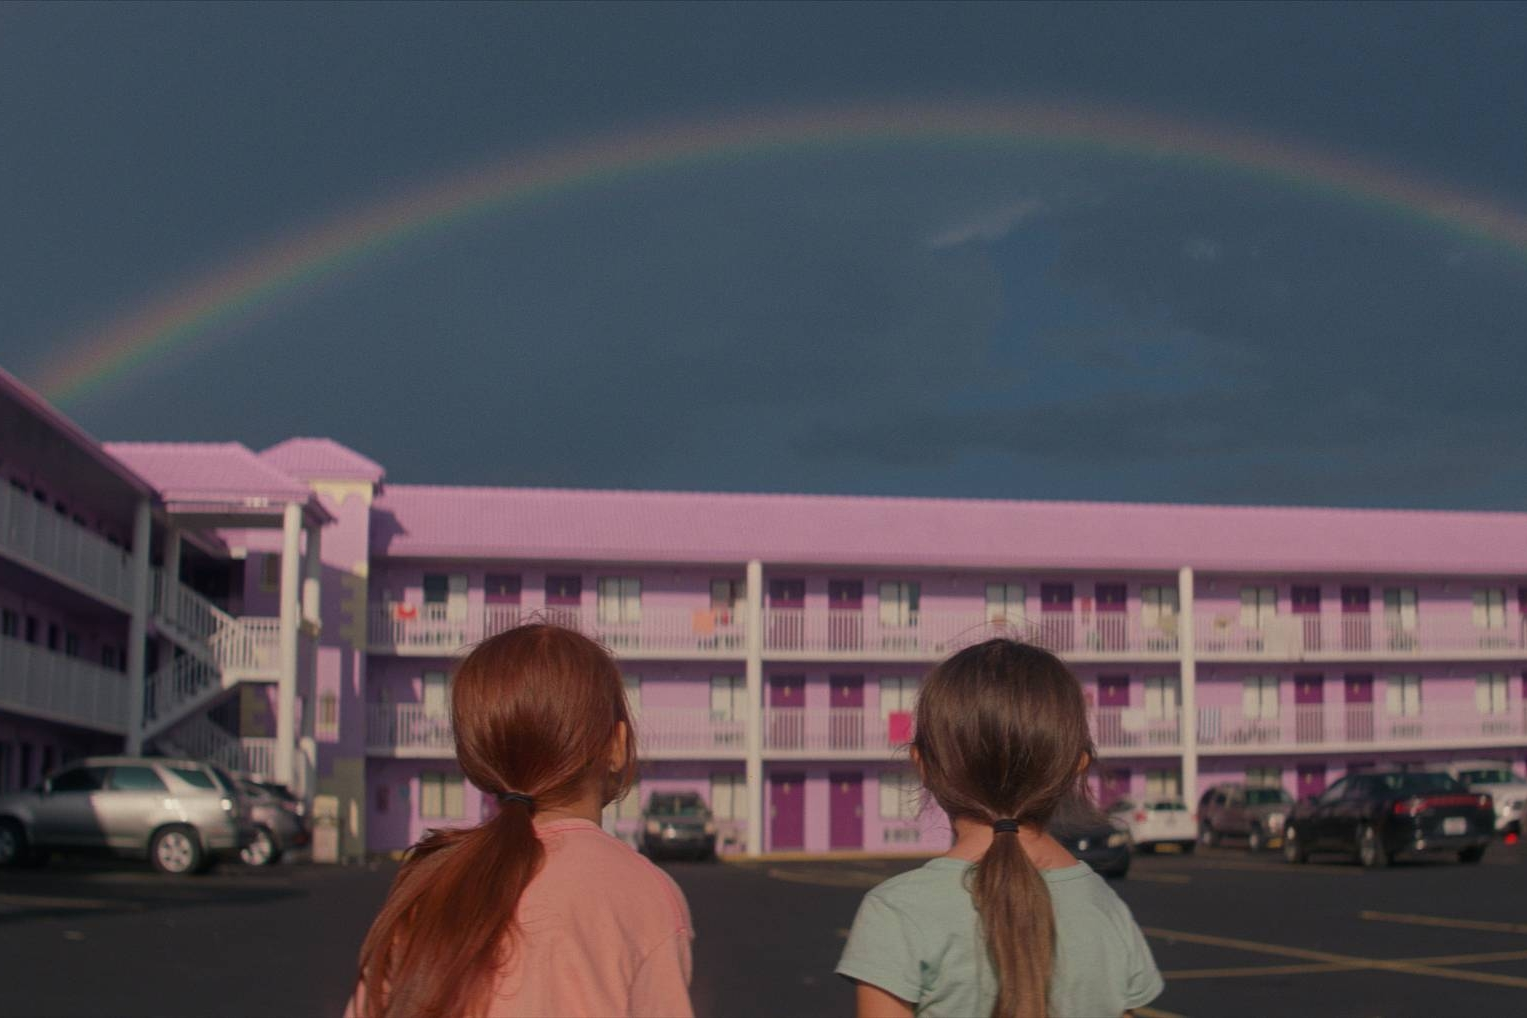 The Florida Project (2017) - Directed by: Sean BakerWritten by: Sean Baker & Chris Bergoch